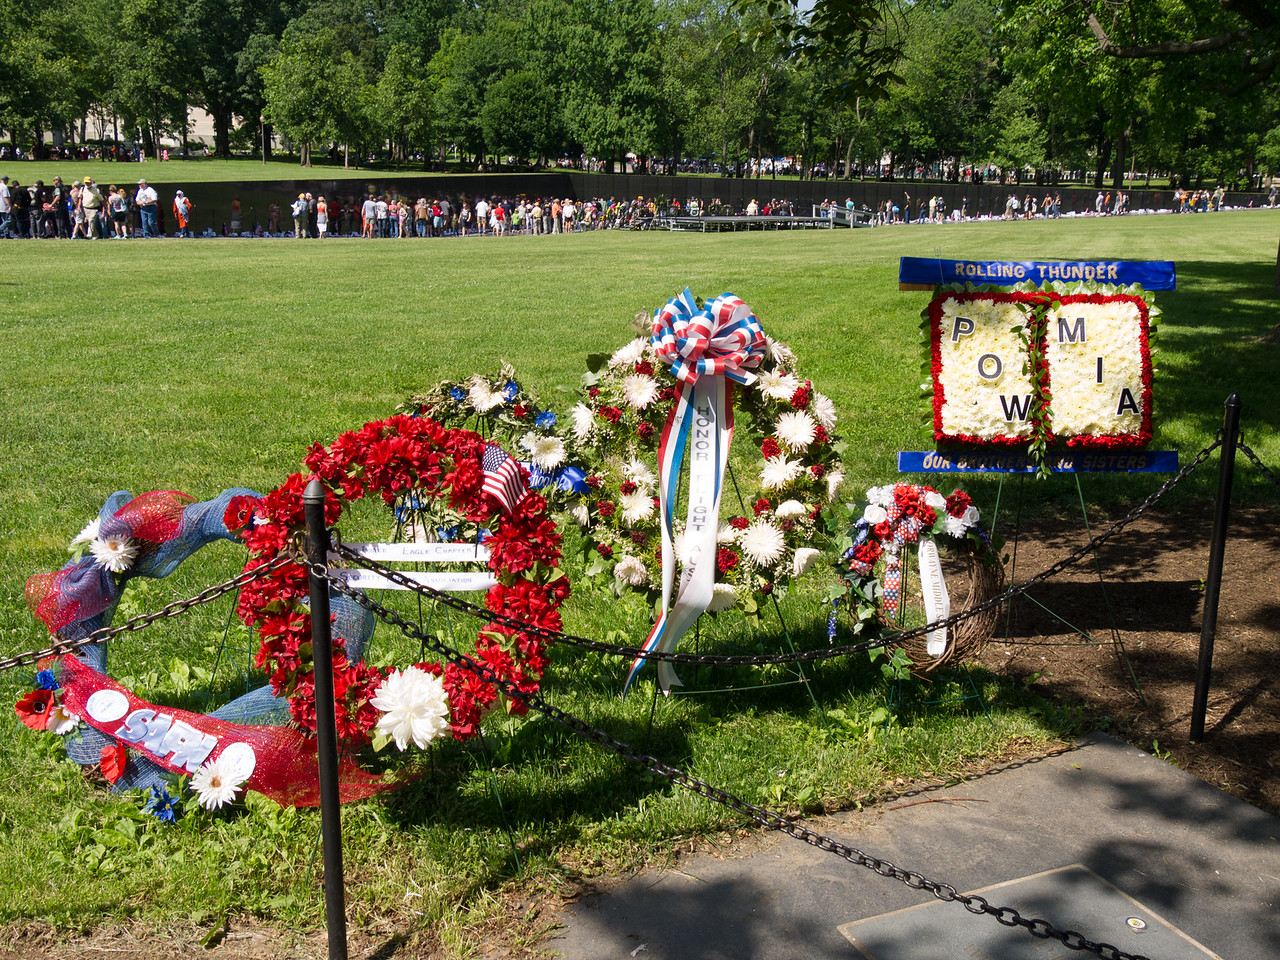 Wreathes near the three soldiers, looking toward the Vietnam memorial wall